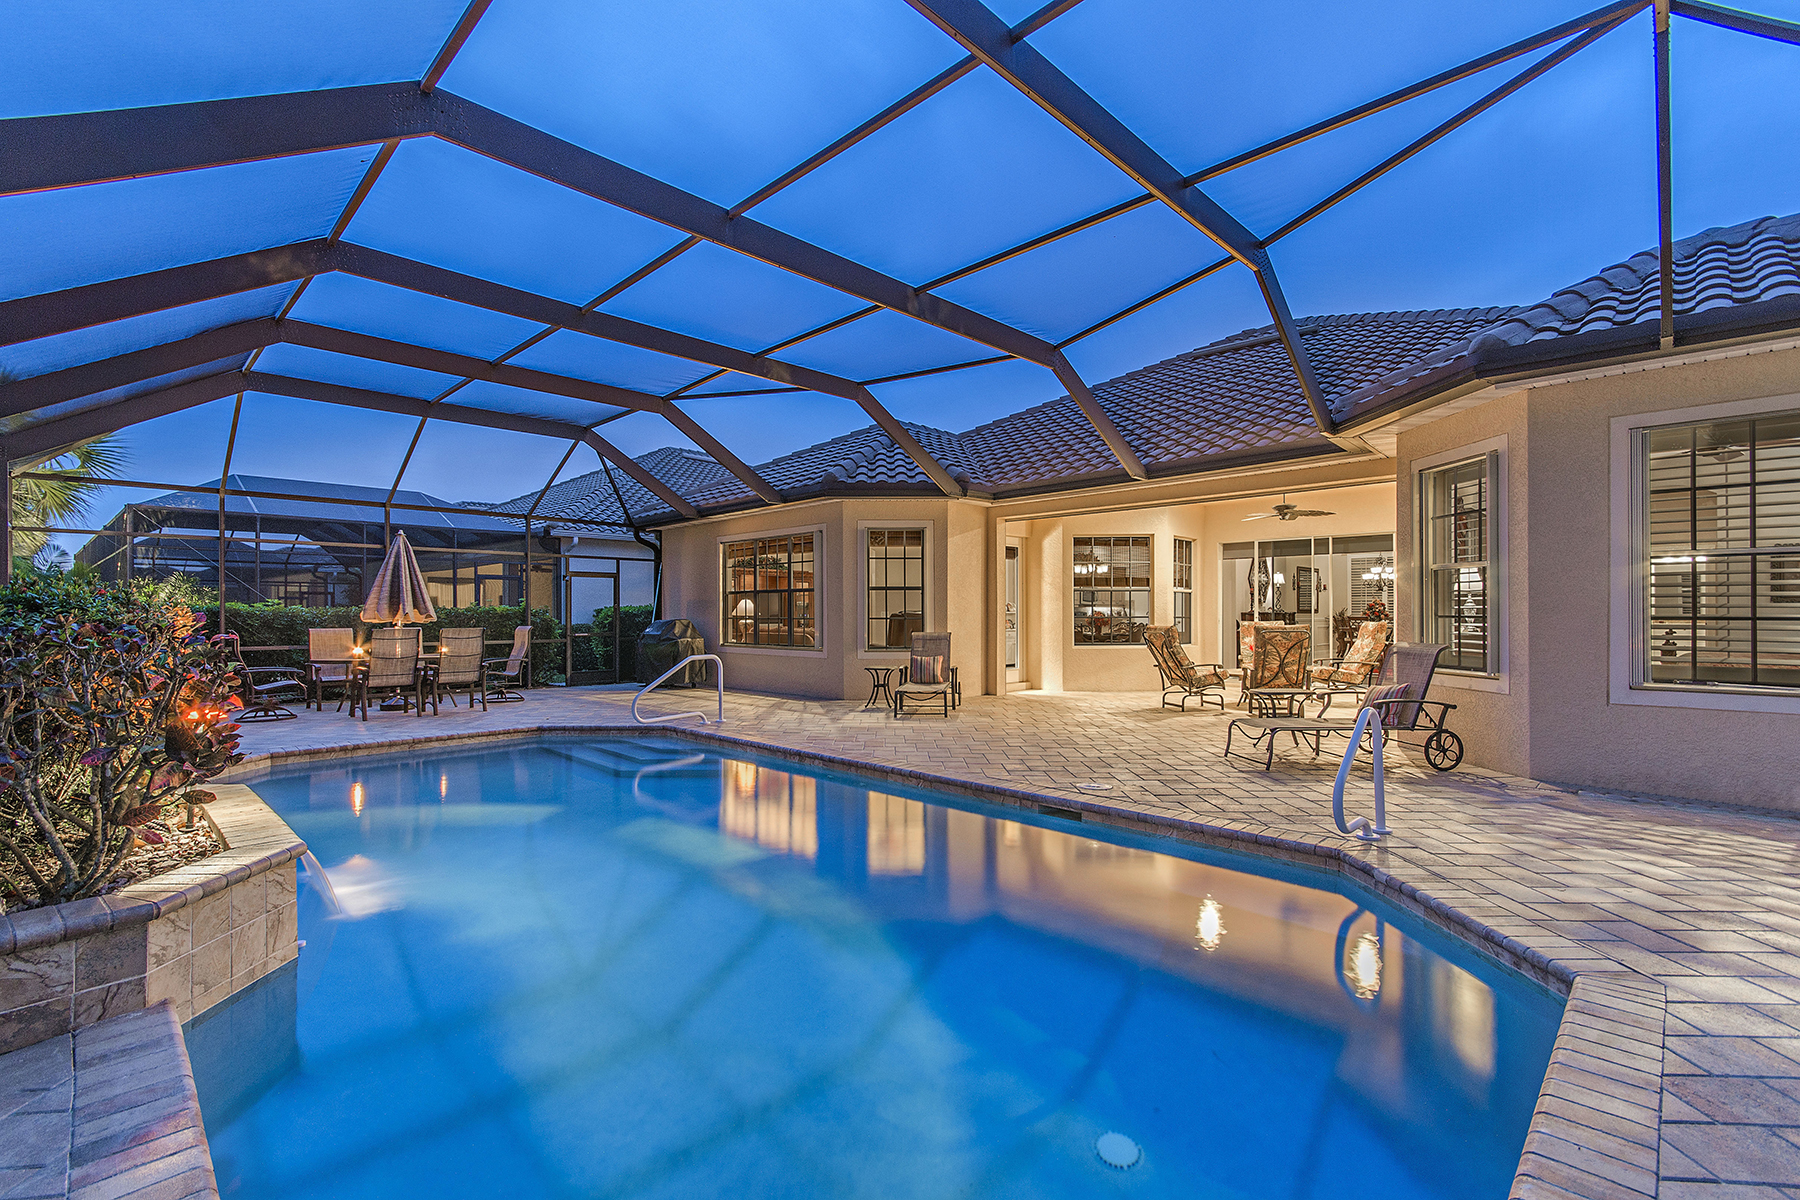 Single Family Home for Sale at Twin Eagles 11914 Heather Woods Ct Naples, Florida, 34120 United States